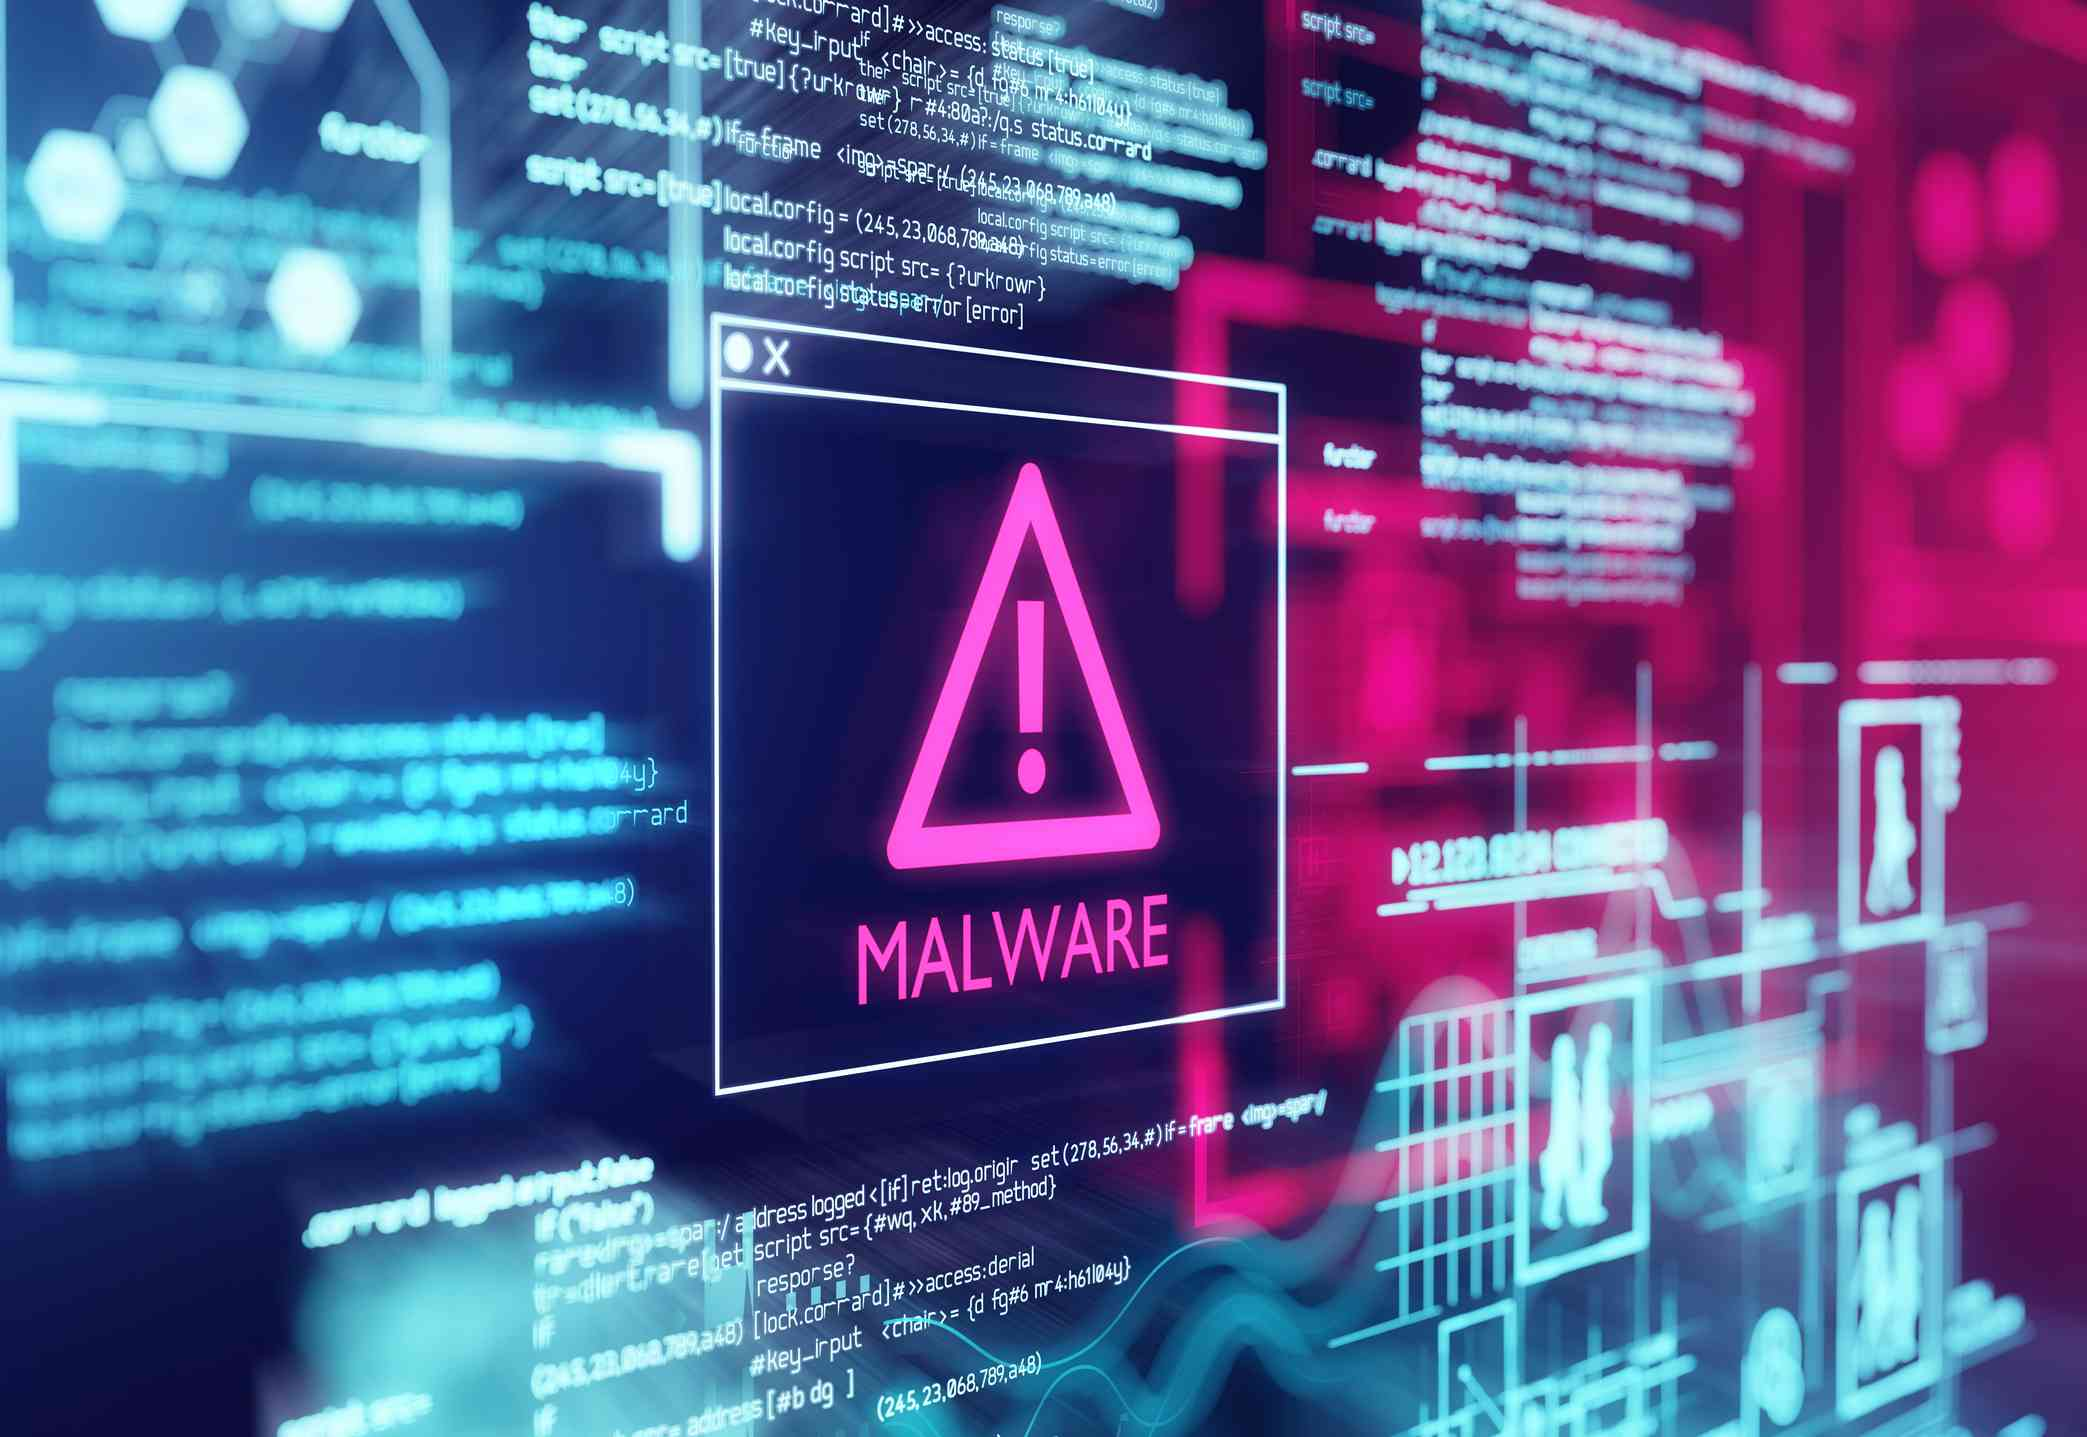 A computer screen with program code warning of a detected malware script program